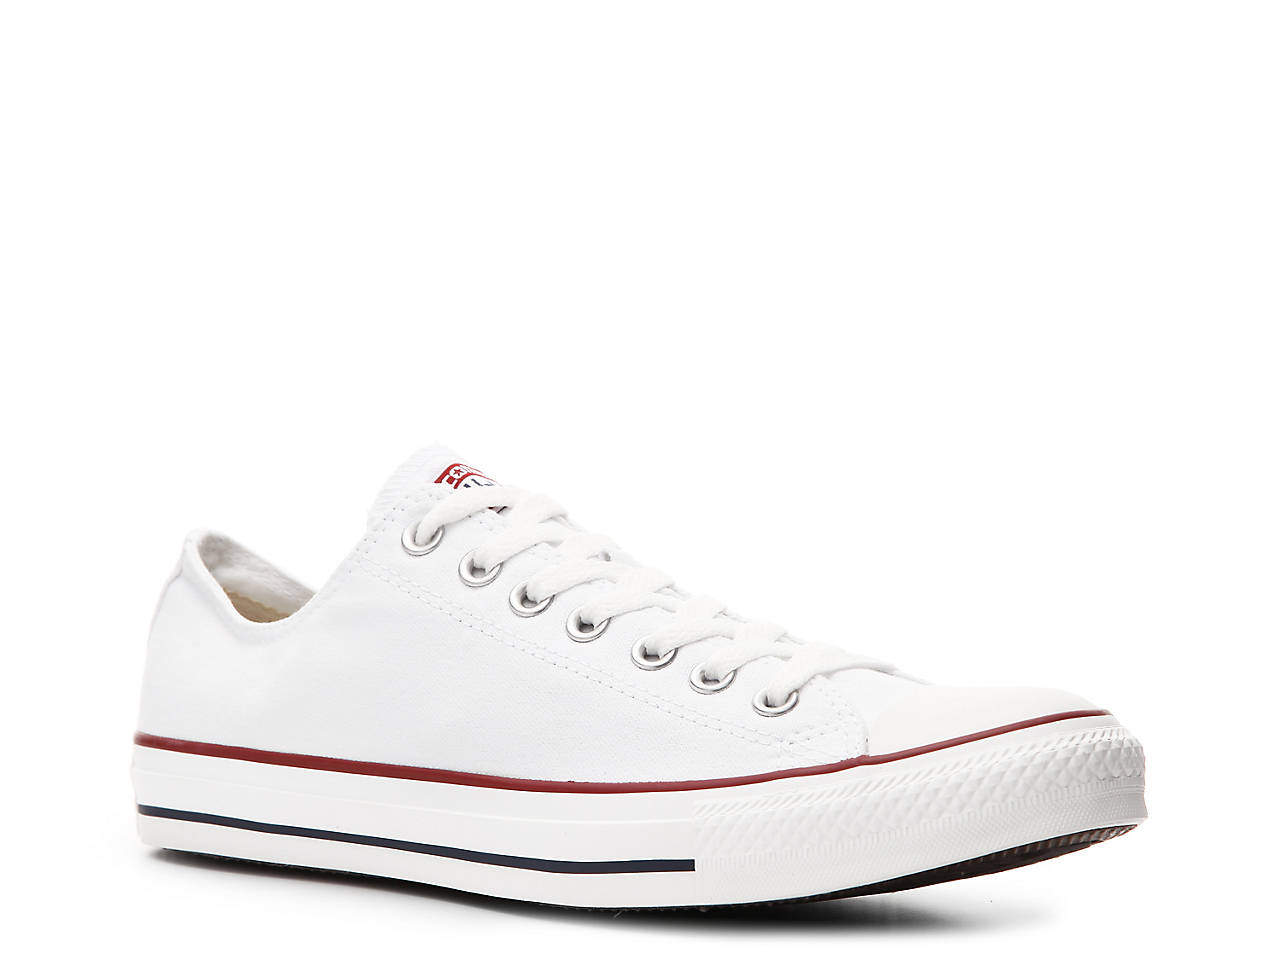 ed189c659fbe Converse Chuck Taylor All Star Sneaker - Men s Men s Shoes